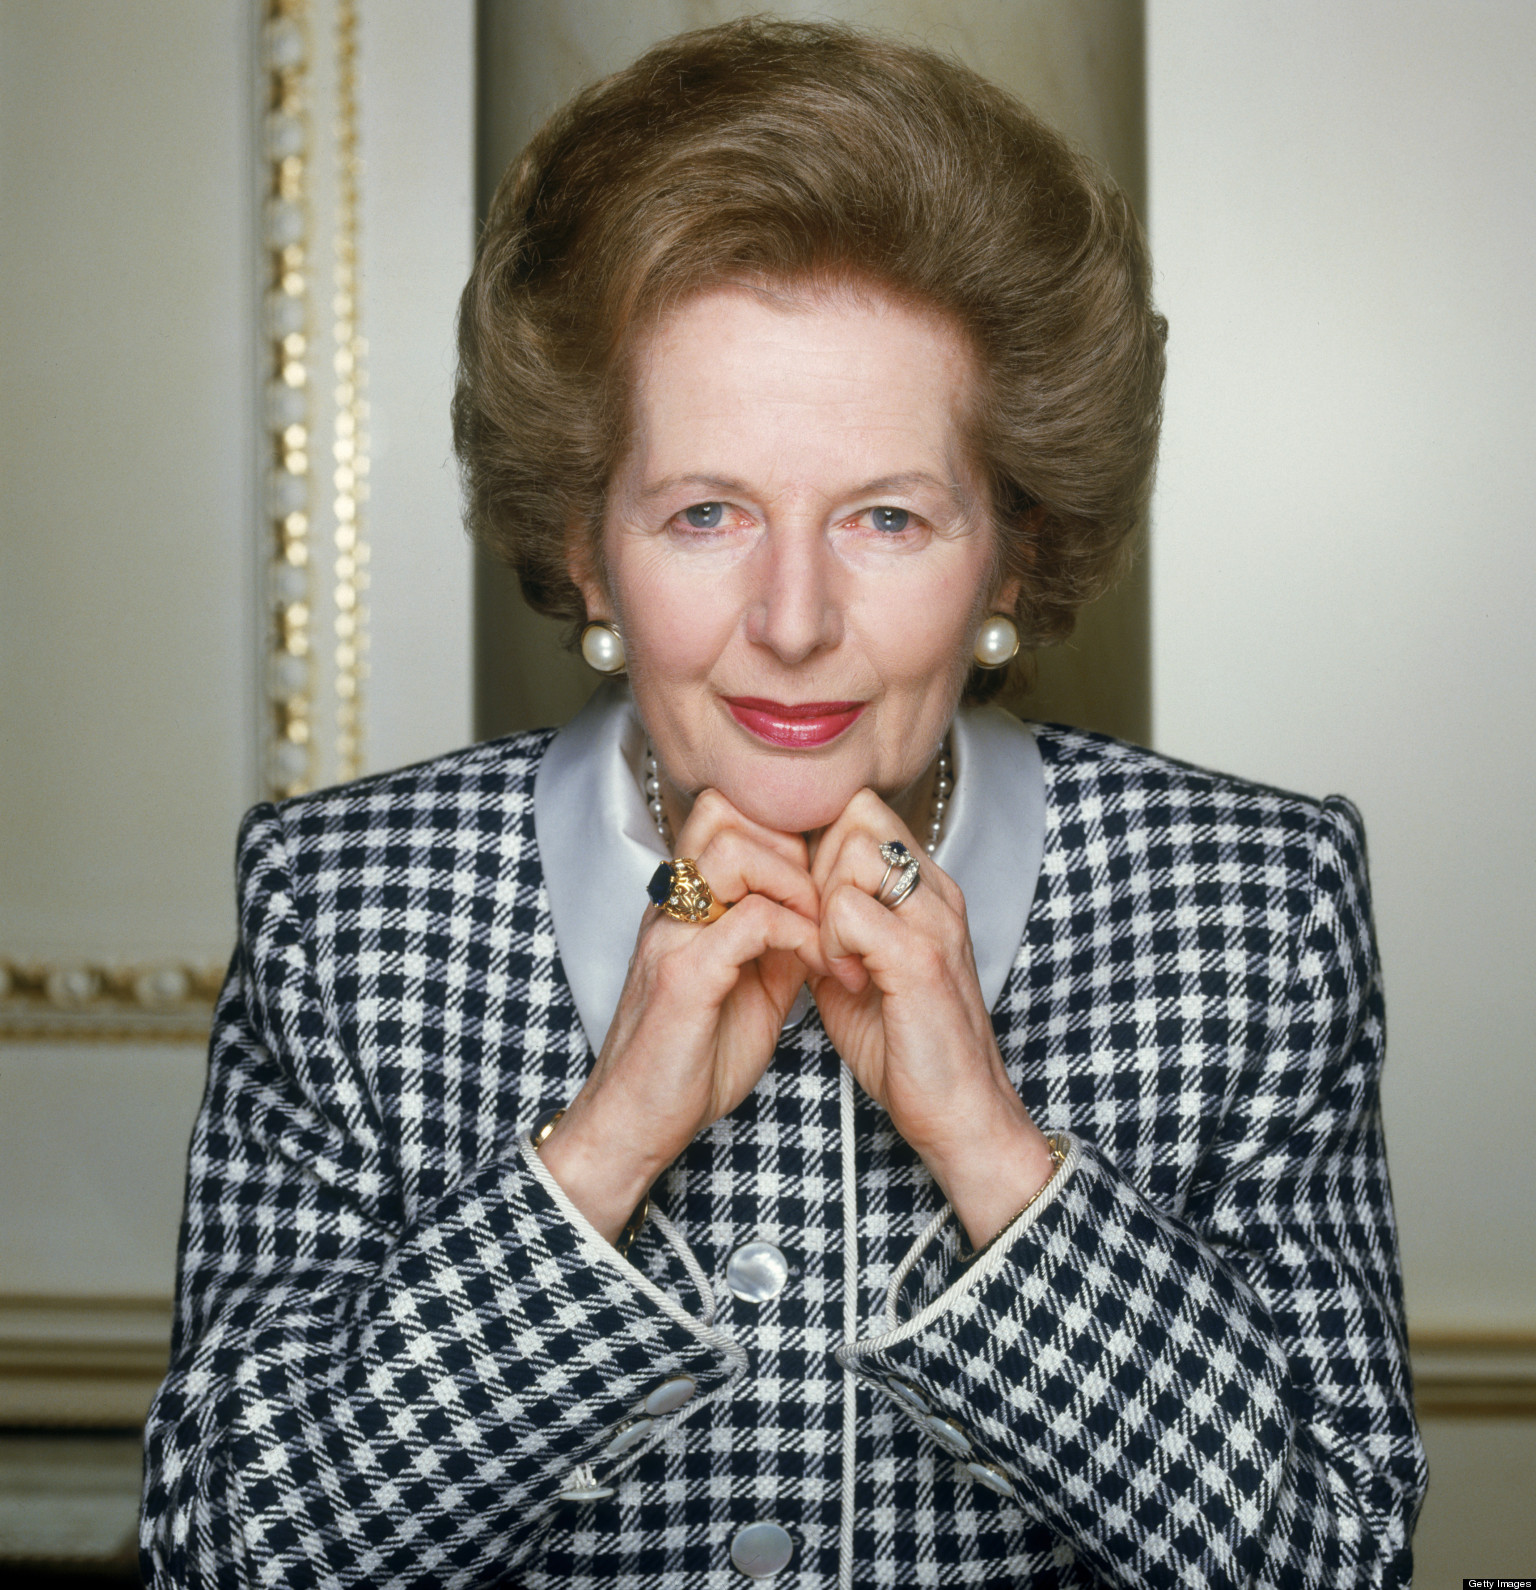 Margaret Thatcher Quotes Live On After Iron Lady Dies At 87